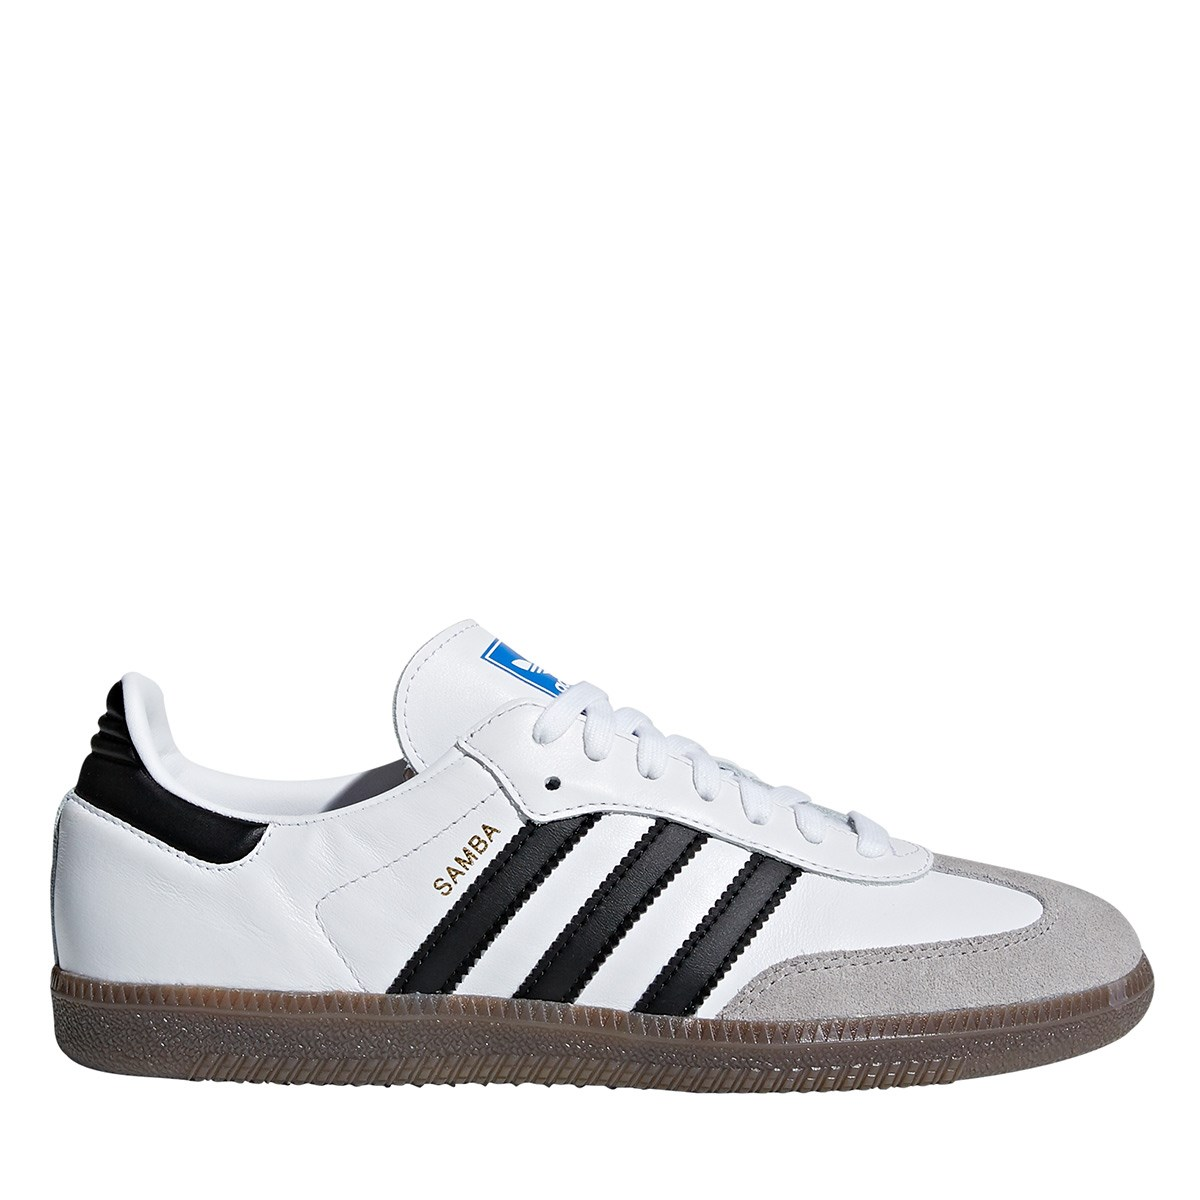 Men's Samba OG Sneaker in White